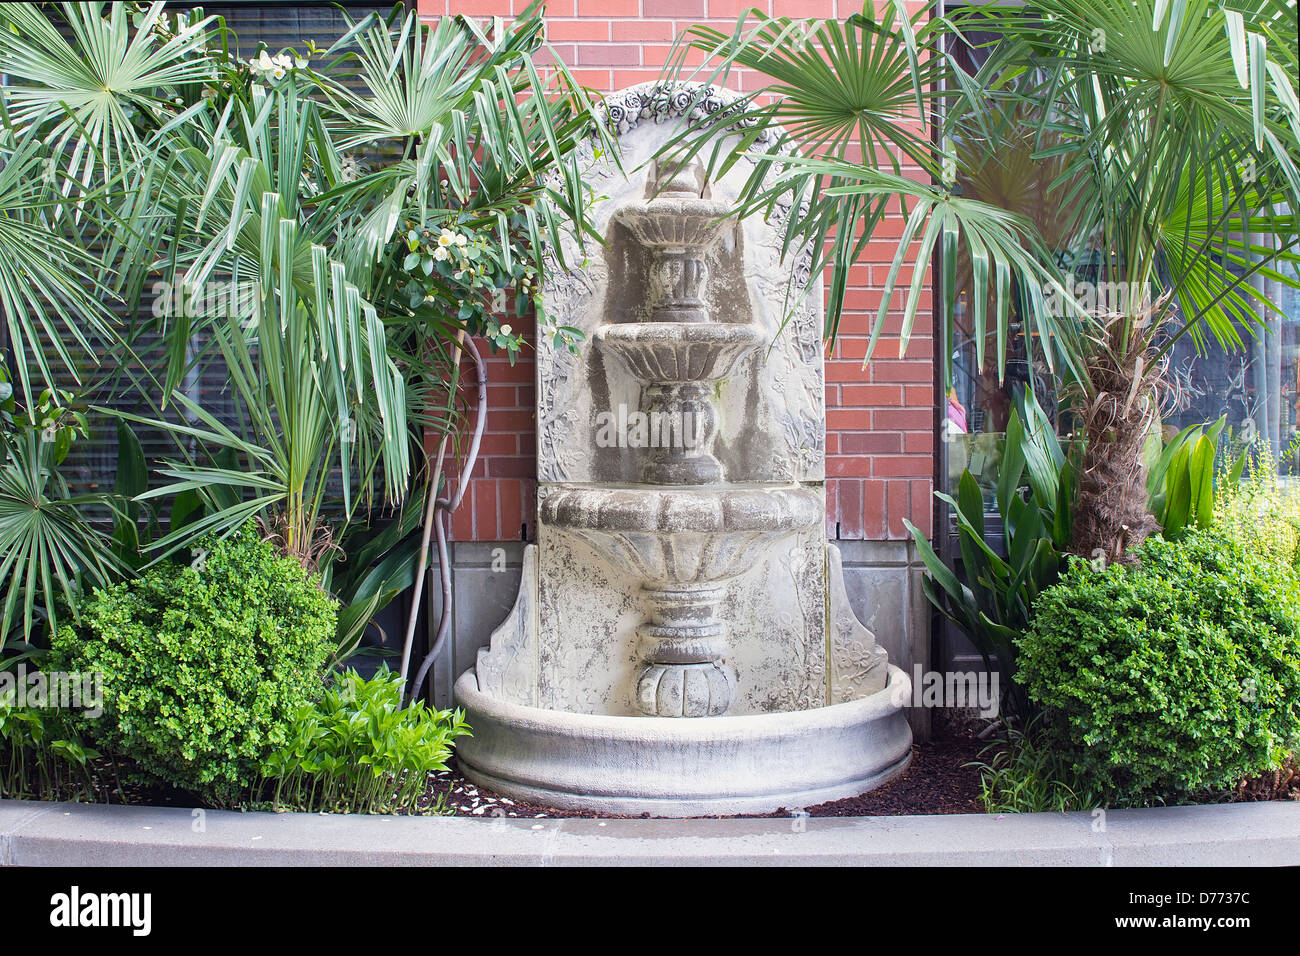 Renaissance Style Water Fountain with Cherubs and Roses in Garden Courtyard - Stock Image